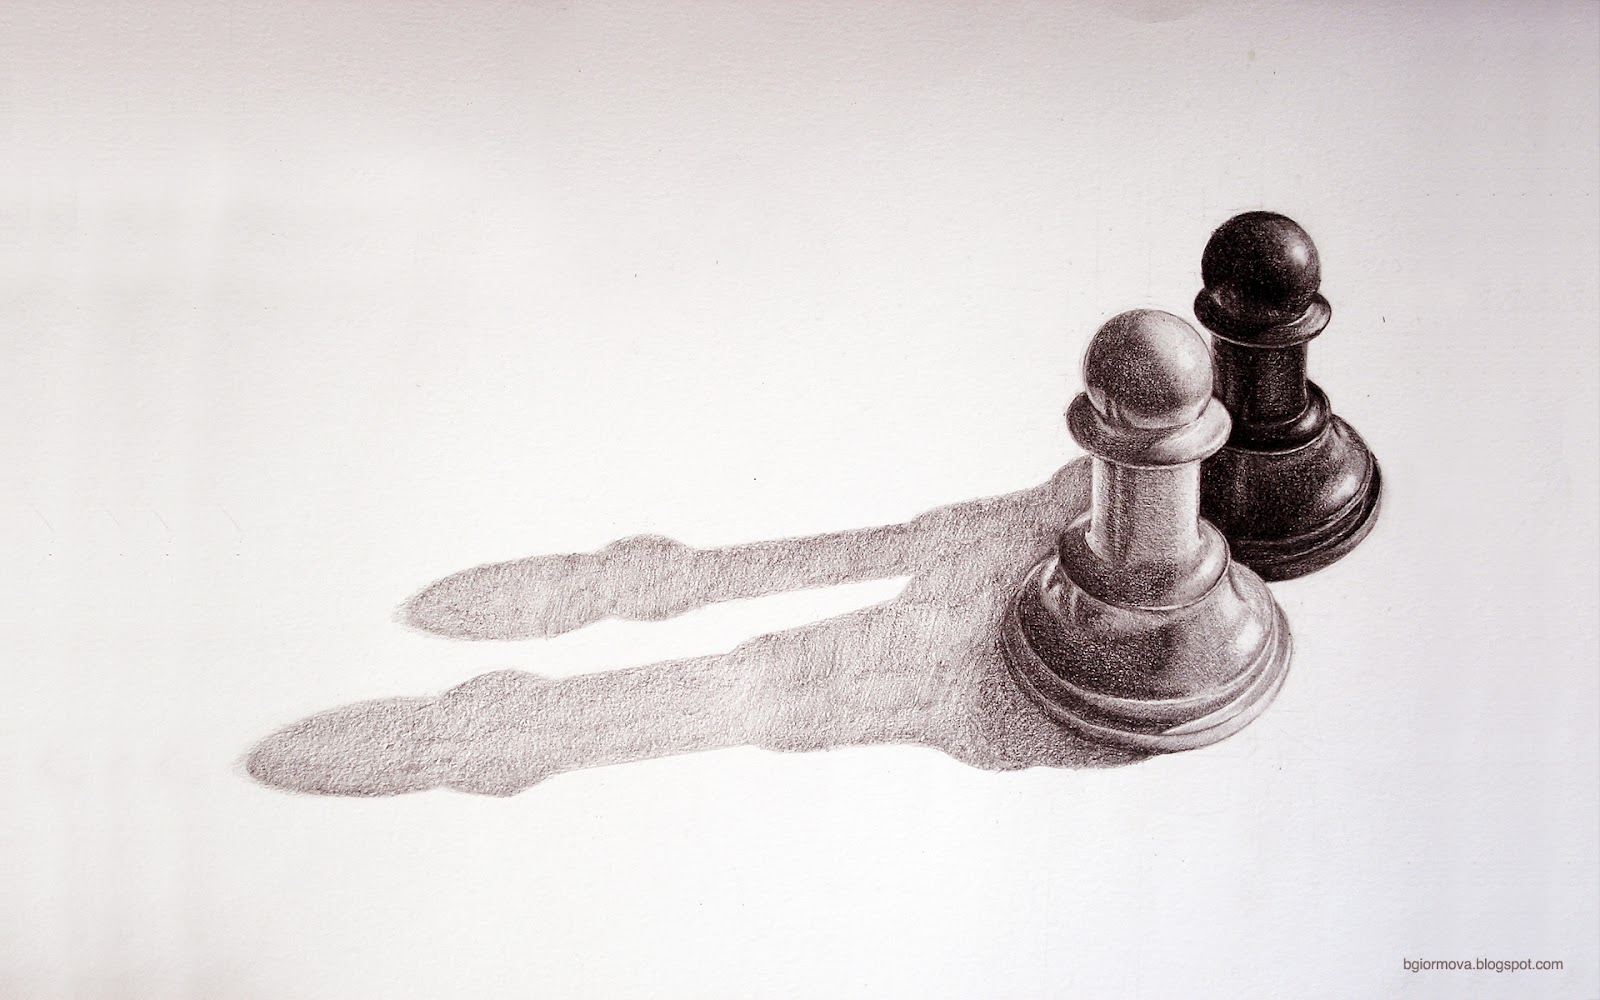 how to draw a chess pawn